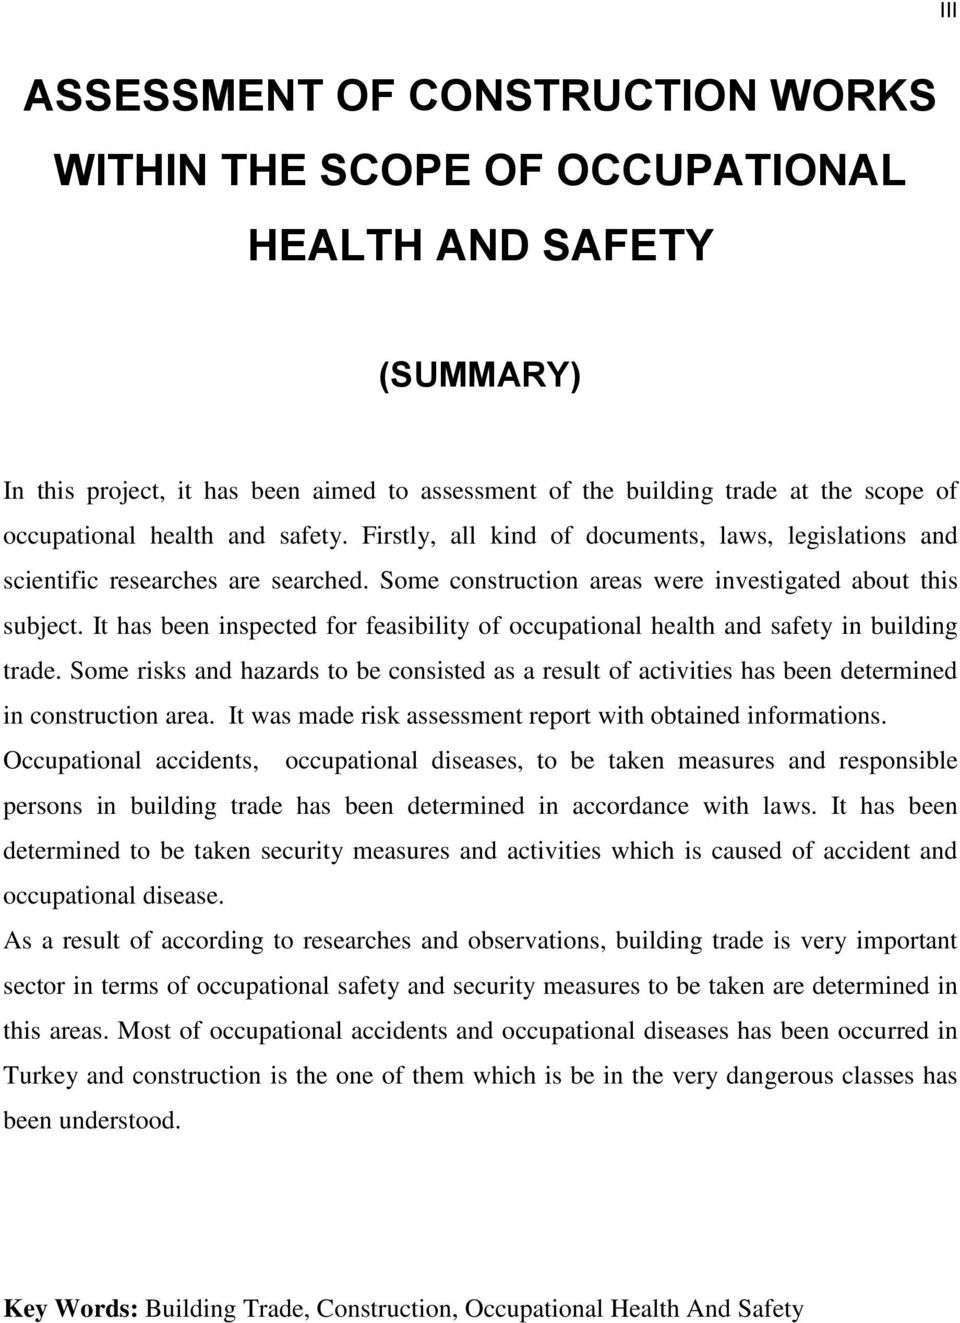 It has been inspected for feasibility of occupational health and safety in building trade. Some risks and hazards to be consisted as a result of activities has been determined in construction area.